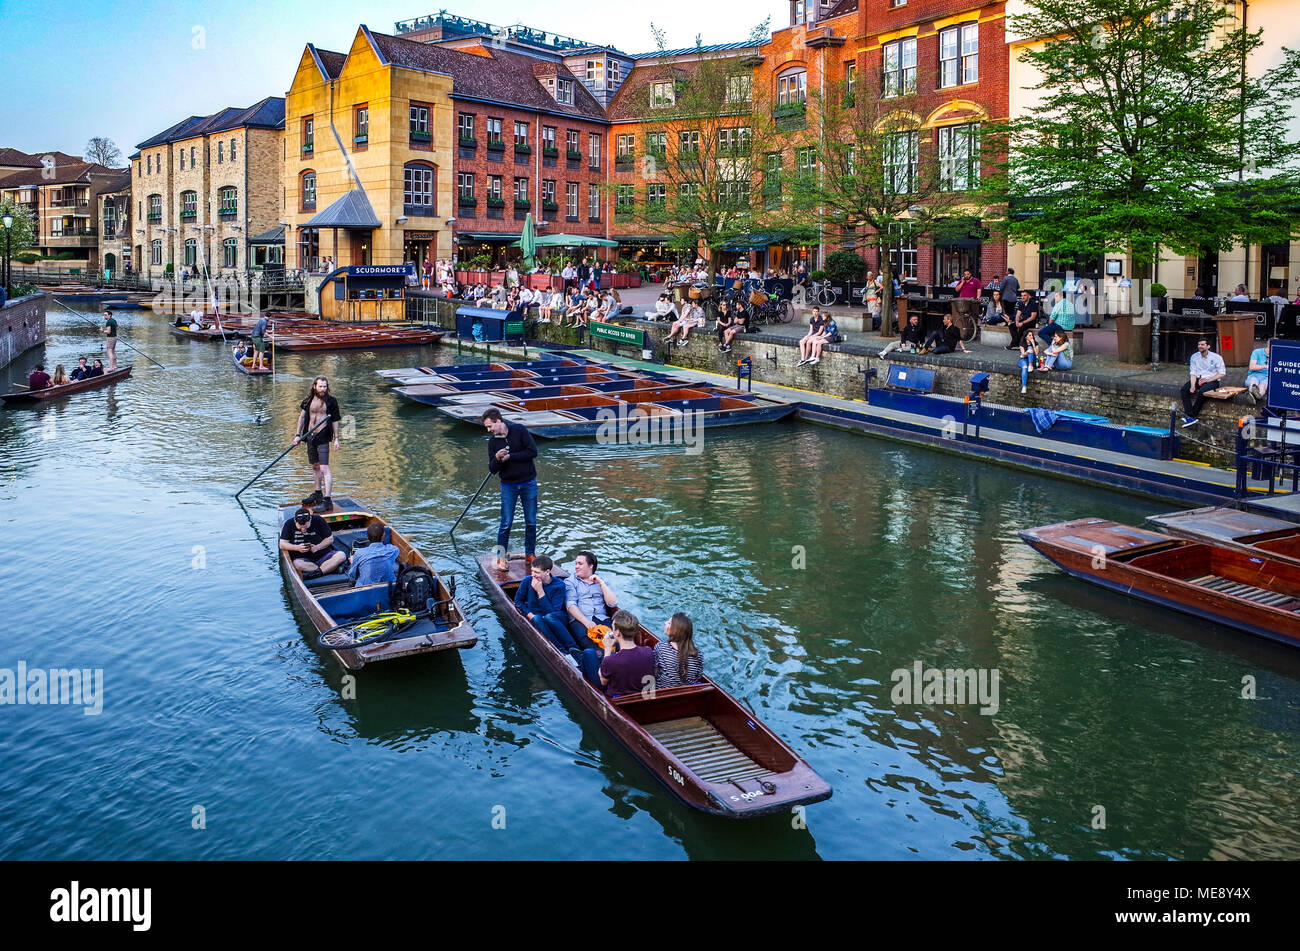 Cambridge Tourism - tourists punt along the River Cam next to the Quayside in Cambridge UK. - Stock Image